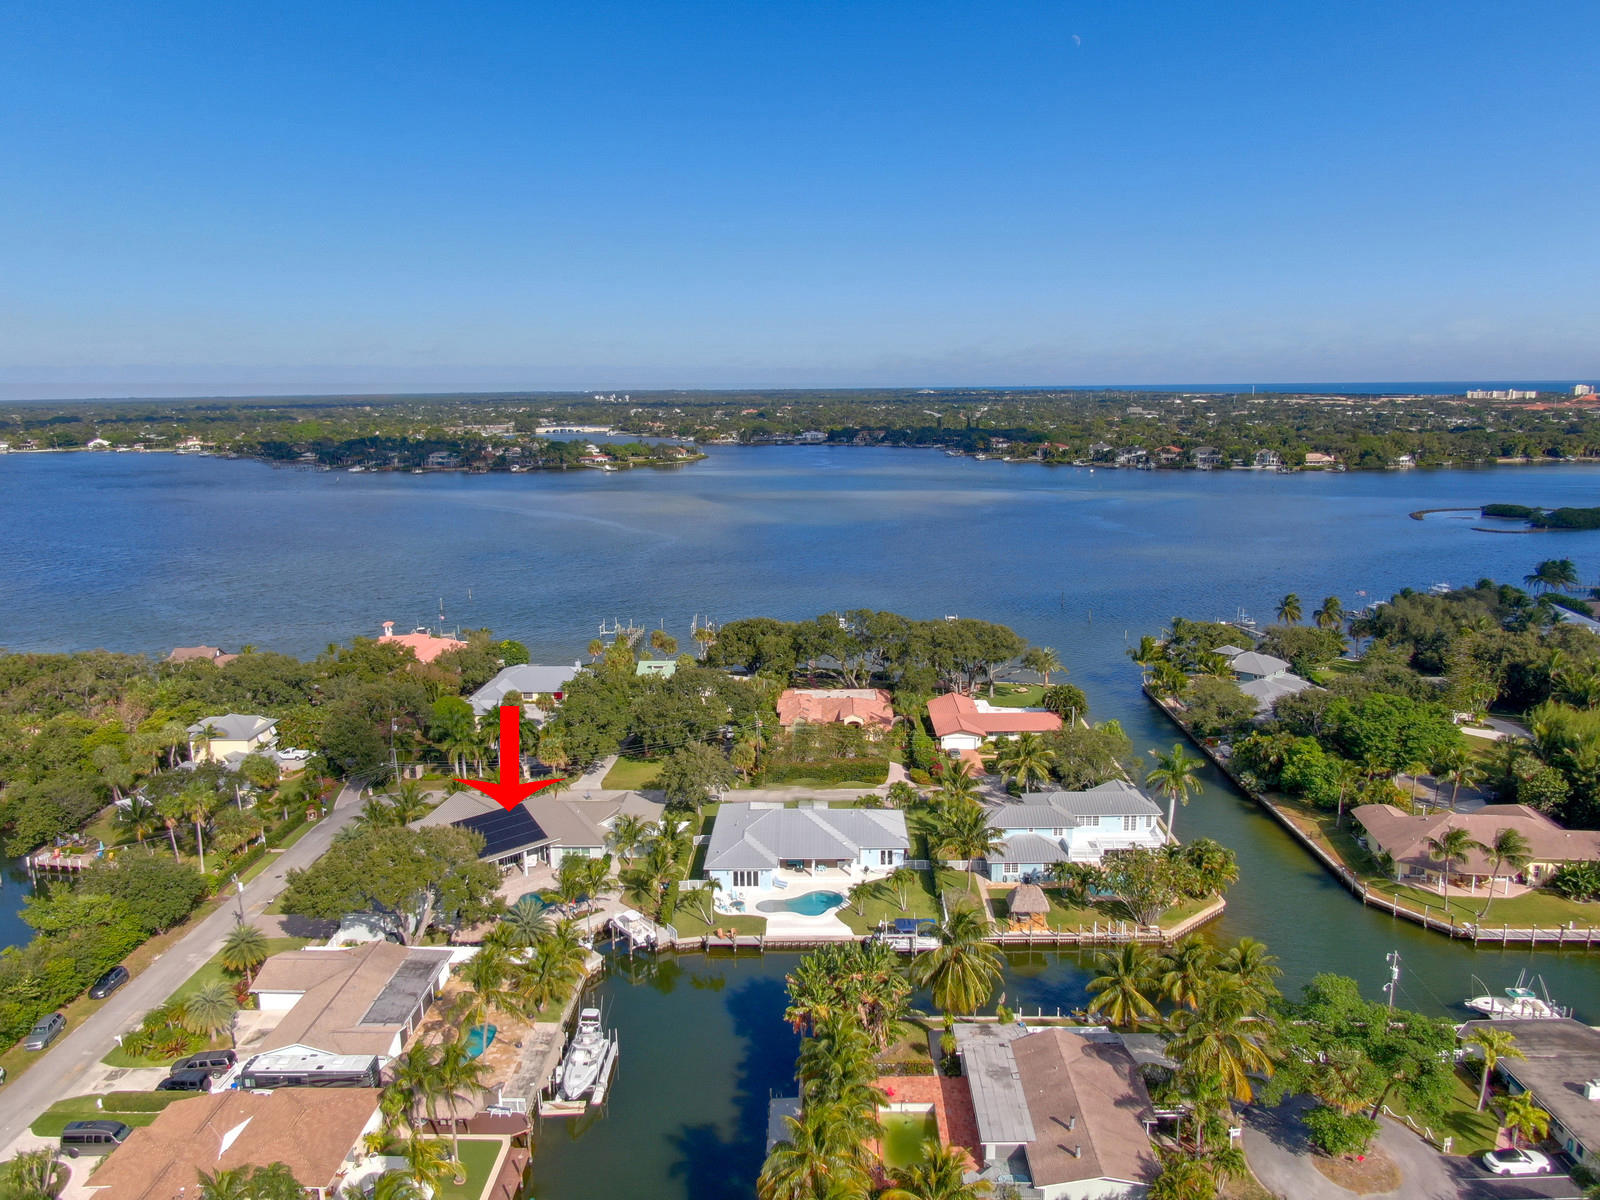 This Spectacular, custom-built waterfront home with ocean access will have you in the Atlantic in minutes. This personal builder's home checks every box that a buyer is looking for. Located on a corner lot and built in 2017 with no expense spared. The coastal designed home sits on a .47 acre lot with a 10,000 pound boat lift and jet ski lift. Mesmerizing views through expansive 10ft tall hurricane rated sliding glass doors in the great room. This 4 bedroom, 3.5 bathroom home with 4 car air-conditioned garages boasts designer finishes, stunning vaulted beamed ceilings, and unsurpassed craftsmanship throughout. State-of-the-art Smart House automation gives you total control over your home. All CBS construction, metal roof, 11.8kw PV solar system, Hurricane impact windows, and doors. For the gourmet cook, the kitchen offers a large island, custom cabinetry made by Woodlife Custom Cabinetry, top of the line taj mahal leathered quartzite countertops and Jenn Aire appliances. The master suite includes his and her custom closets and overlooks the water and pool area. The large master bathroom features dual sinks, a separate shower and stand alone tub, custom lighting, marble flooring, and walls. Step outside and enjoy the Florida lifestyle with a large covered front and back porch, a Tiki Hut, Paddle Board Tiki rack, professionally designed landscaping by Steve Parker from Parker Yannetti, and a magnificent custom-designed heated pool and spa with a sun shelf, LED lights, and water features. Boating, fishing, paddle boarding is right in your backyard with a newly designed seawall that allows easy access to the water. The fixed boat lift should support up to a 27ft boat and with lift changes up to a 34ft. In addition, the small-vessel swiveling lift holds a WaveRunner. A-rated schools and minutes to great restaurants, shopping, golf, and pristine beaches.